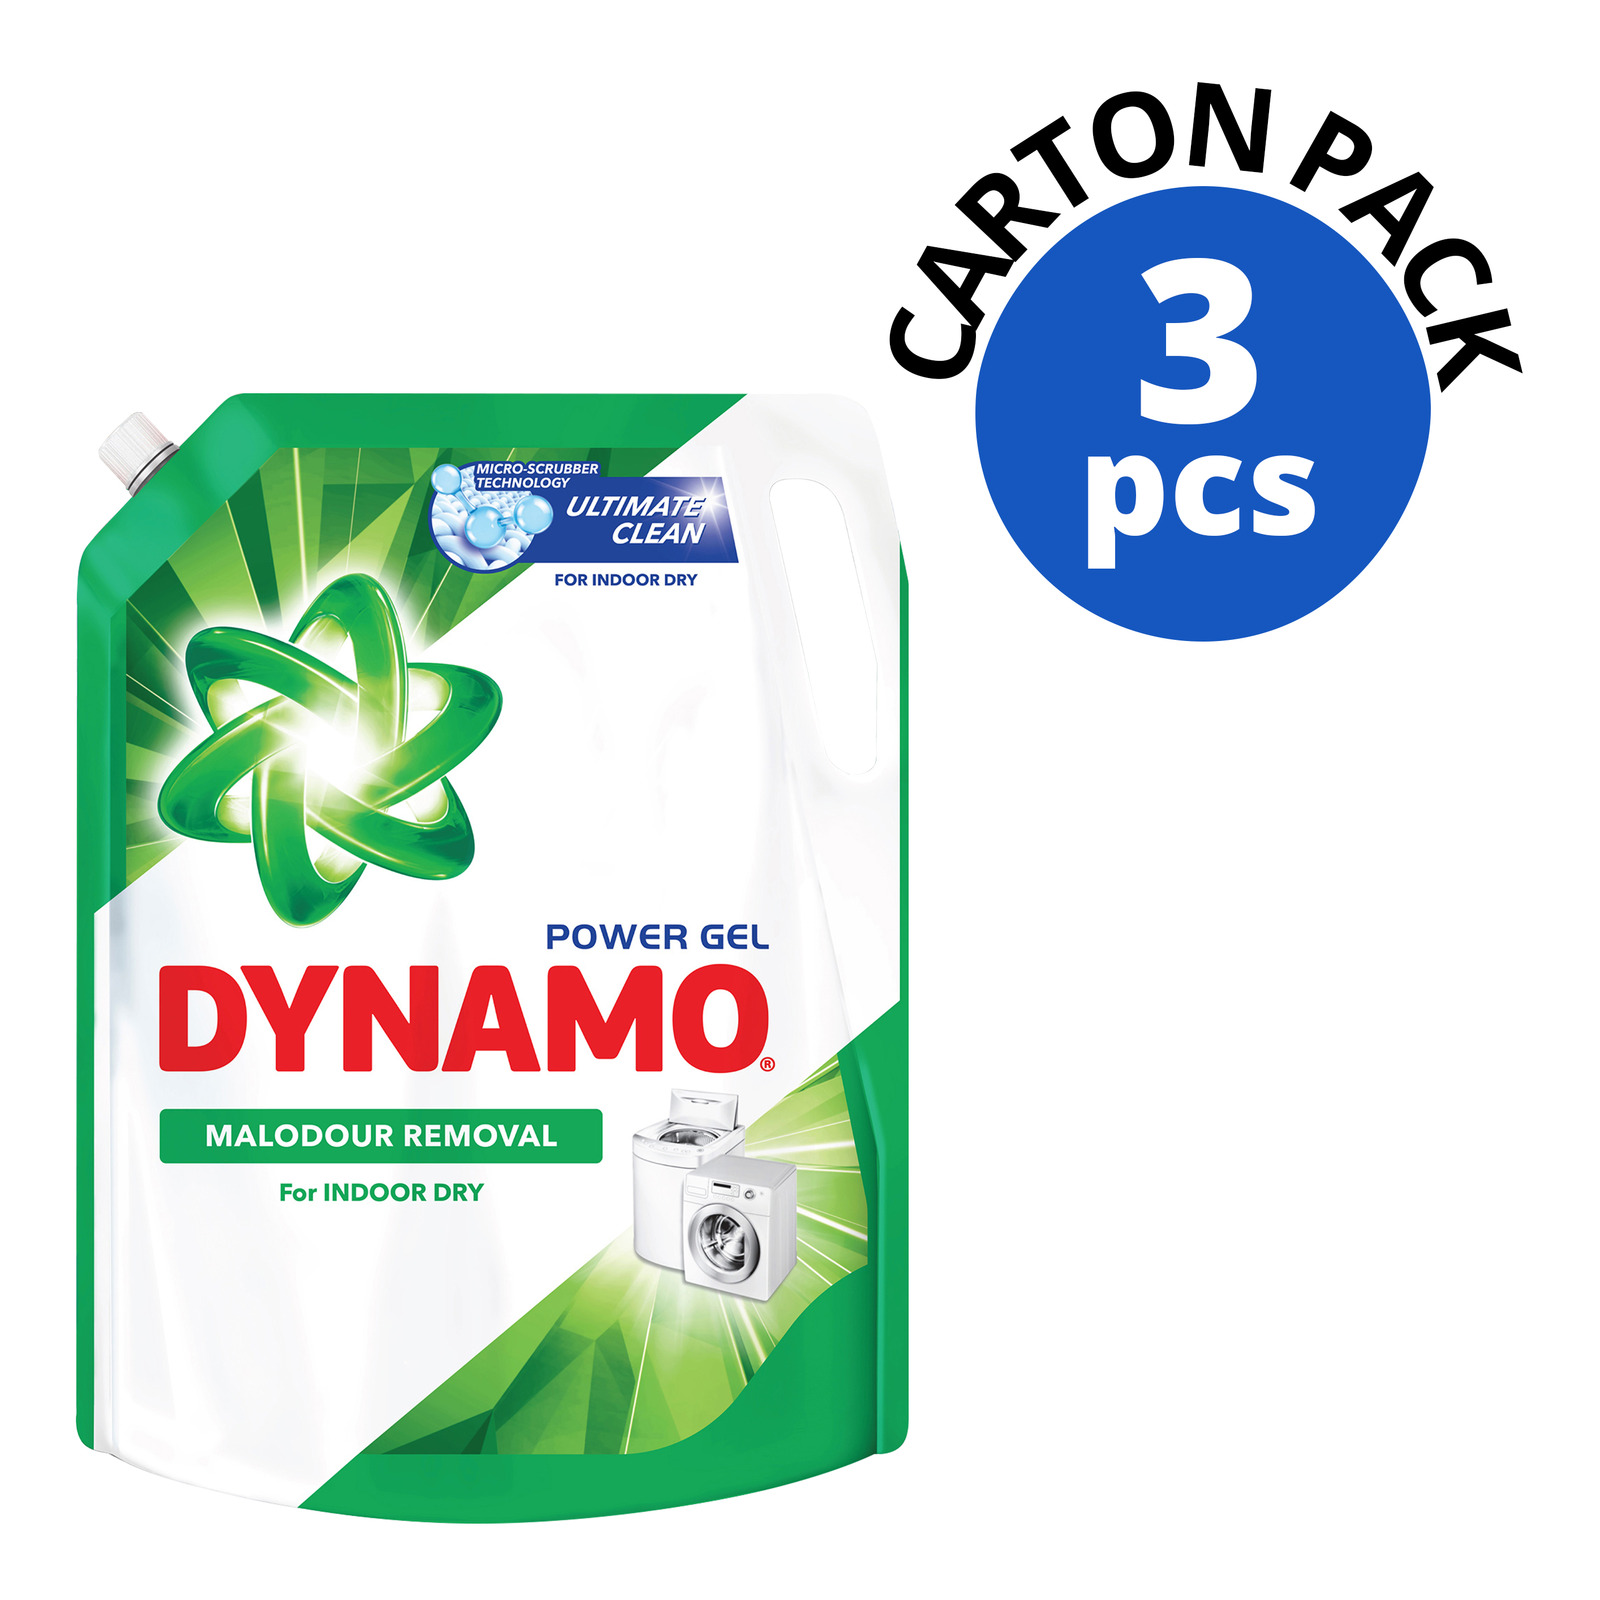 Dynamo Power Gel Laundry Detergent Refill - IndoorDry